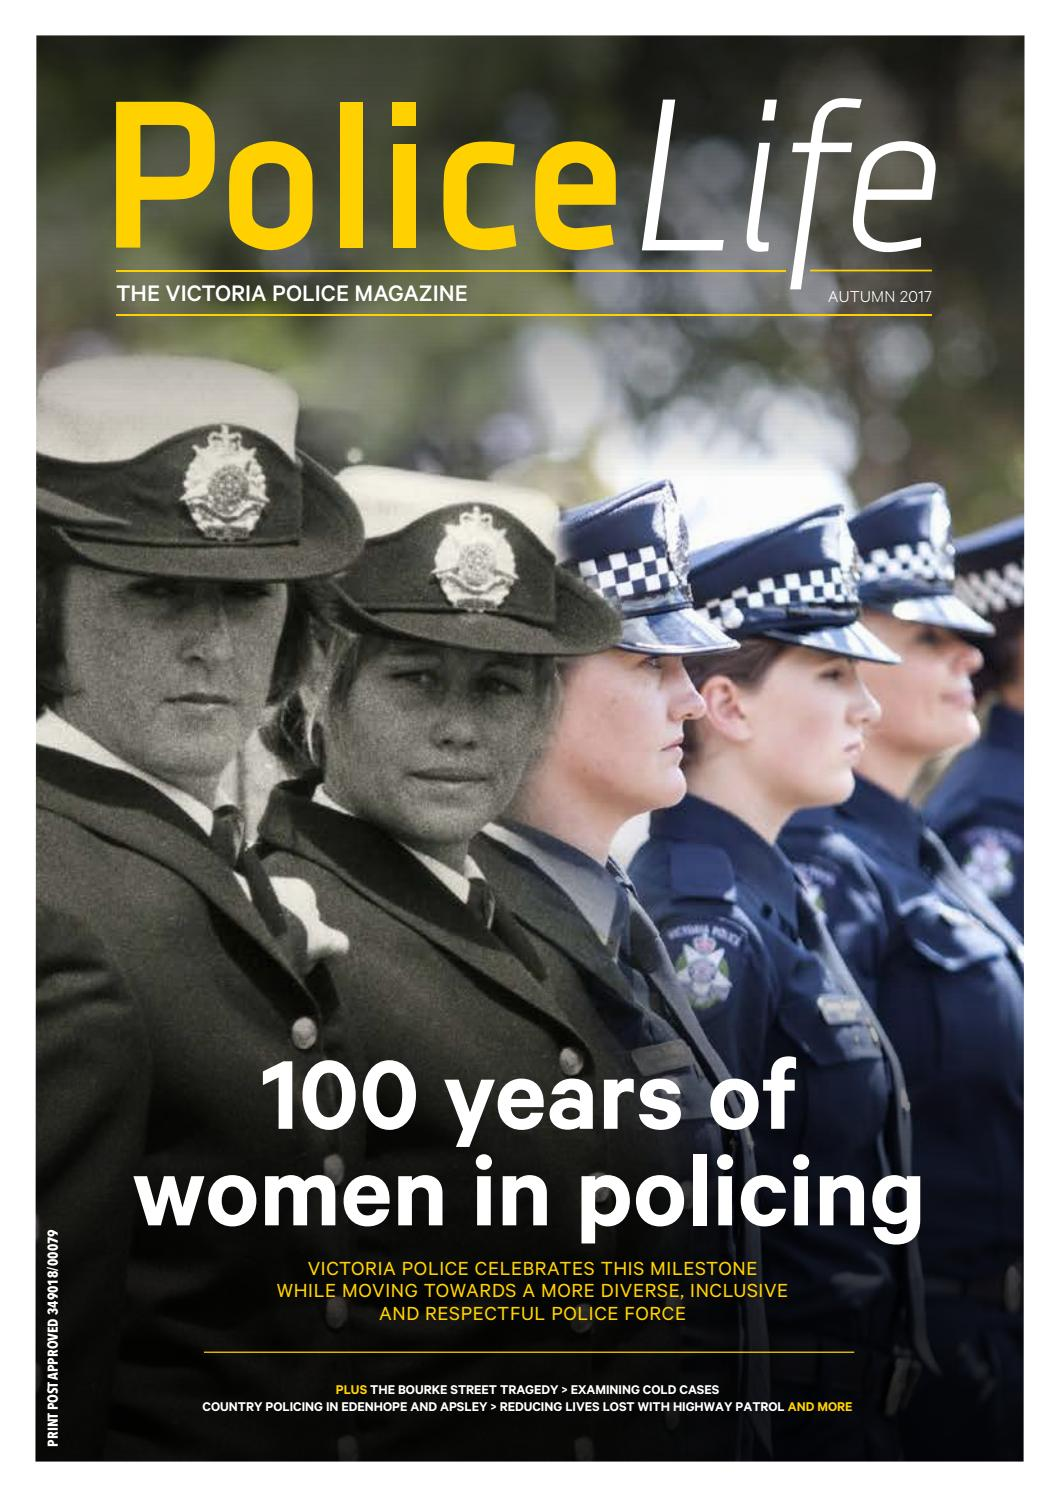 Police Life Autumn 2017 By Victoria Police Issuu